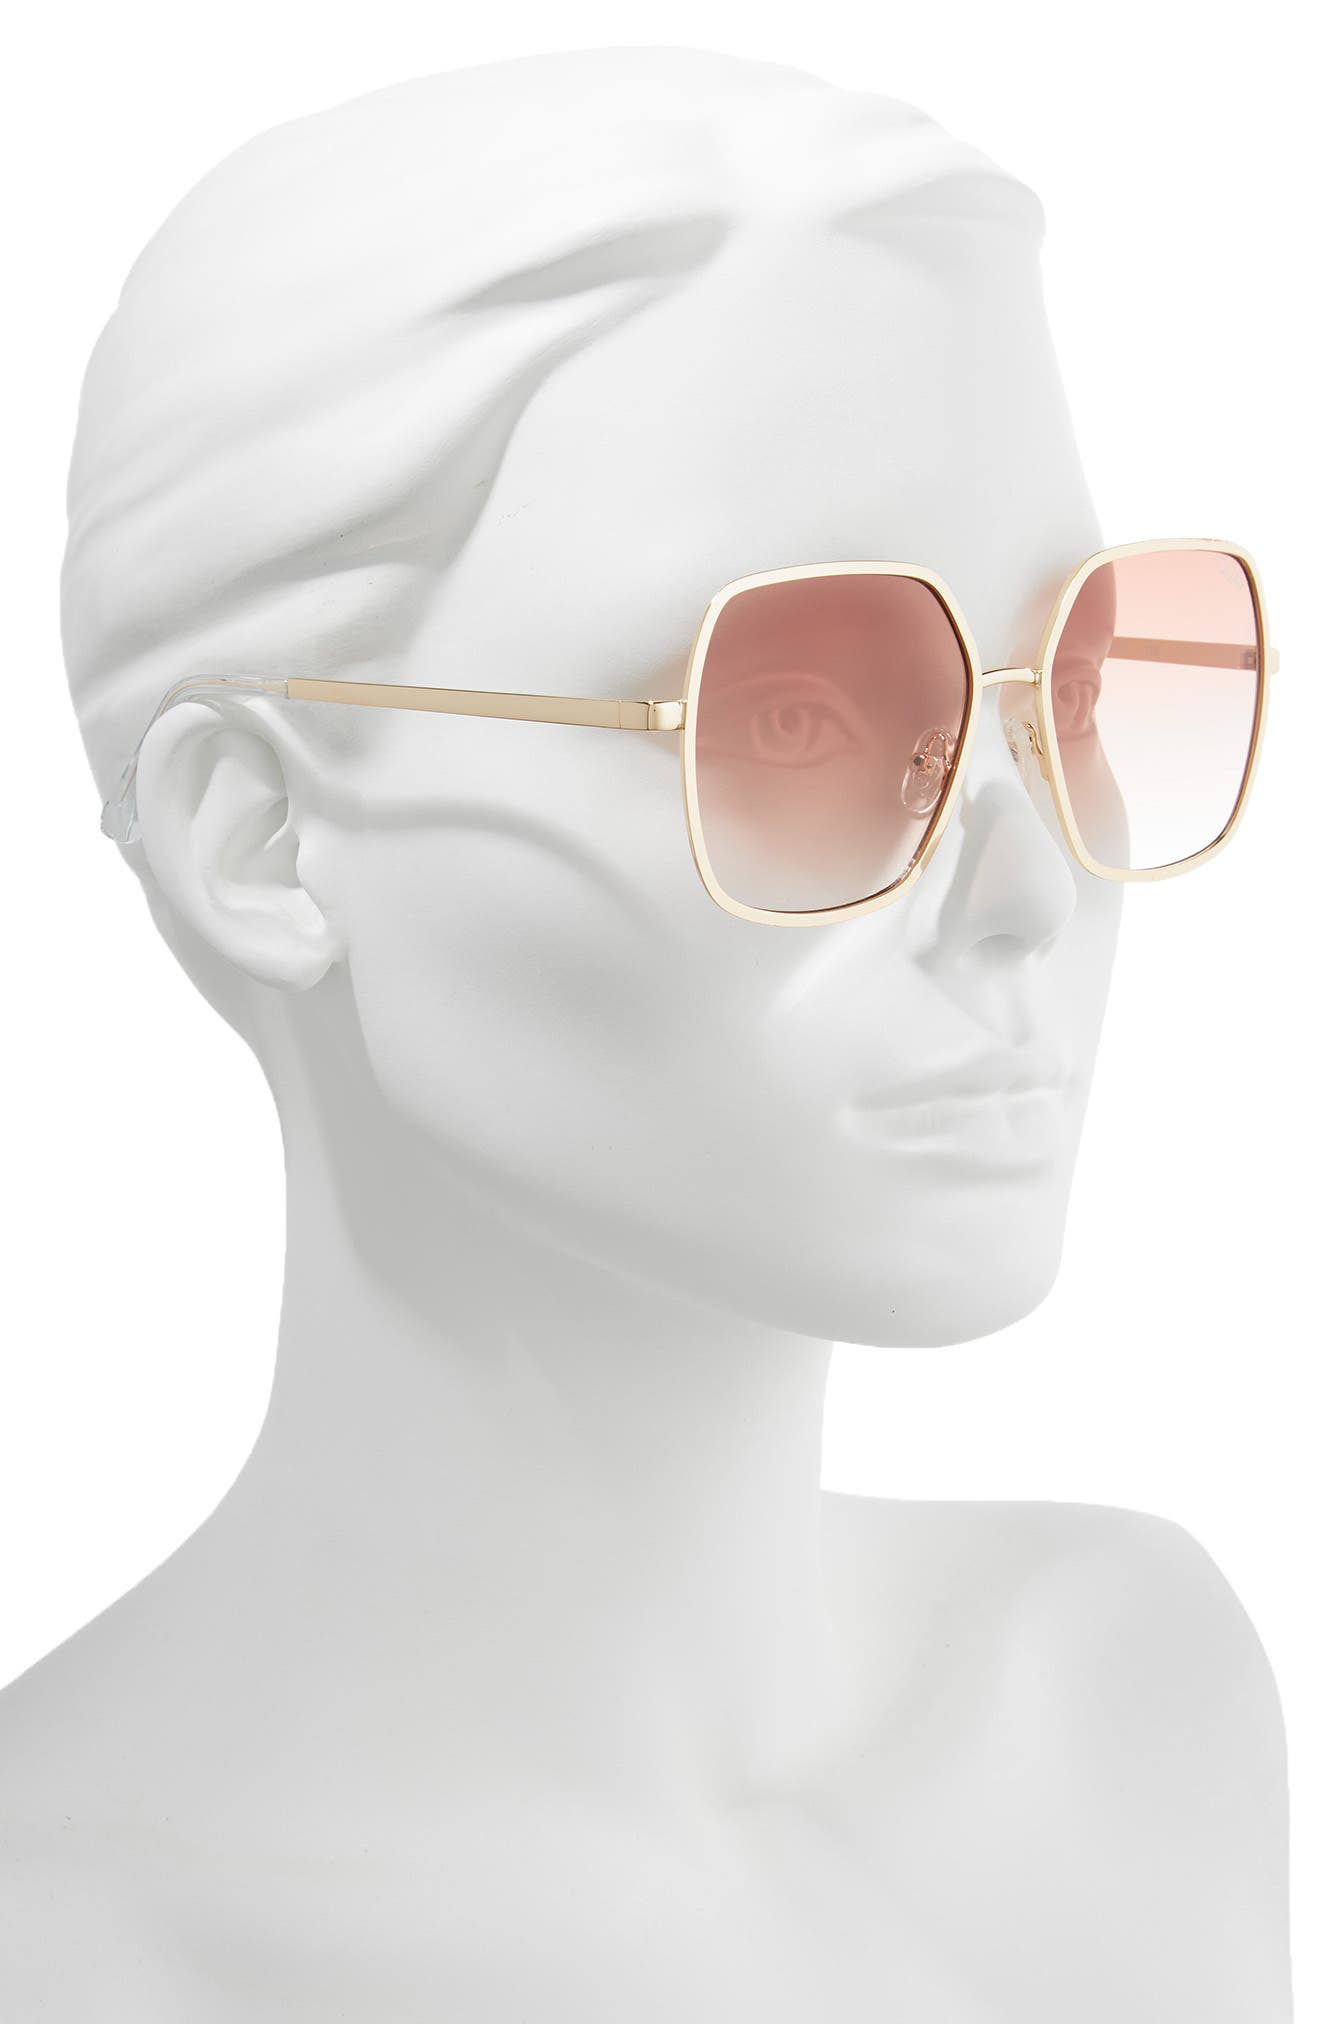 Undercover 57mm Square Sunglasses,                             Alternate thumbnail 2, color,                             GOLD/ PEACH